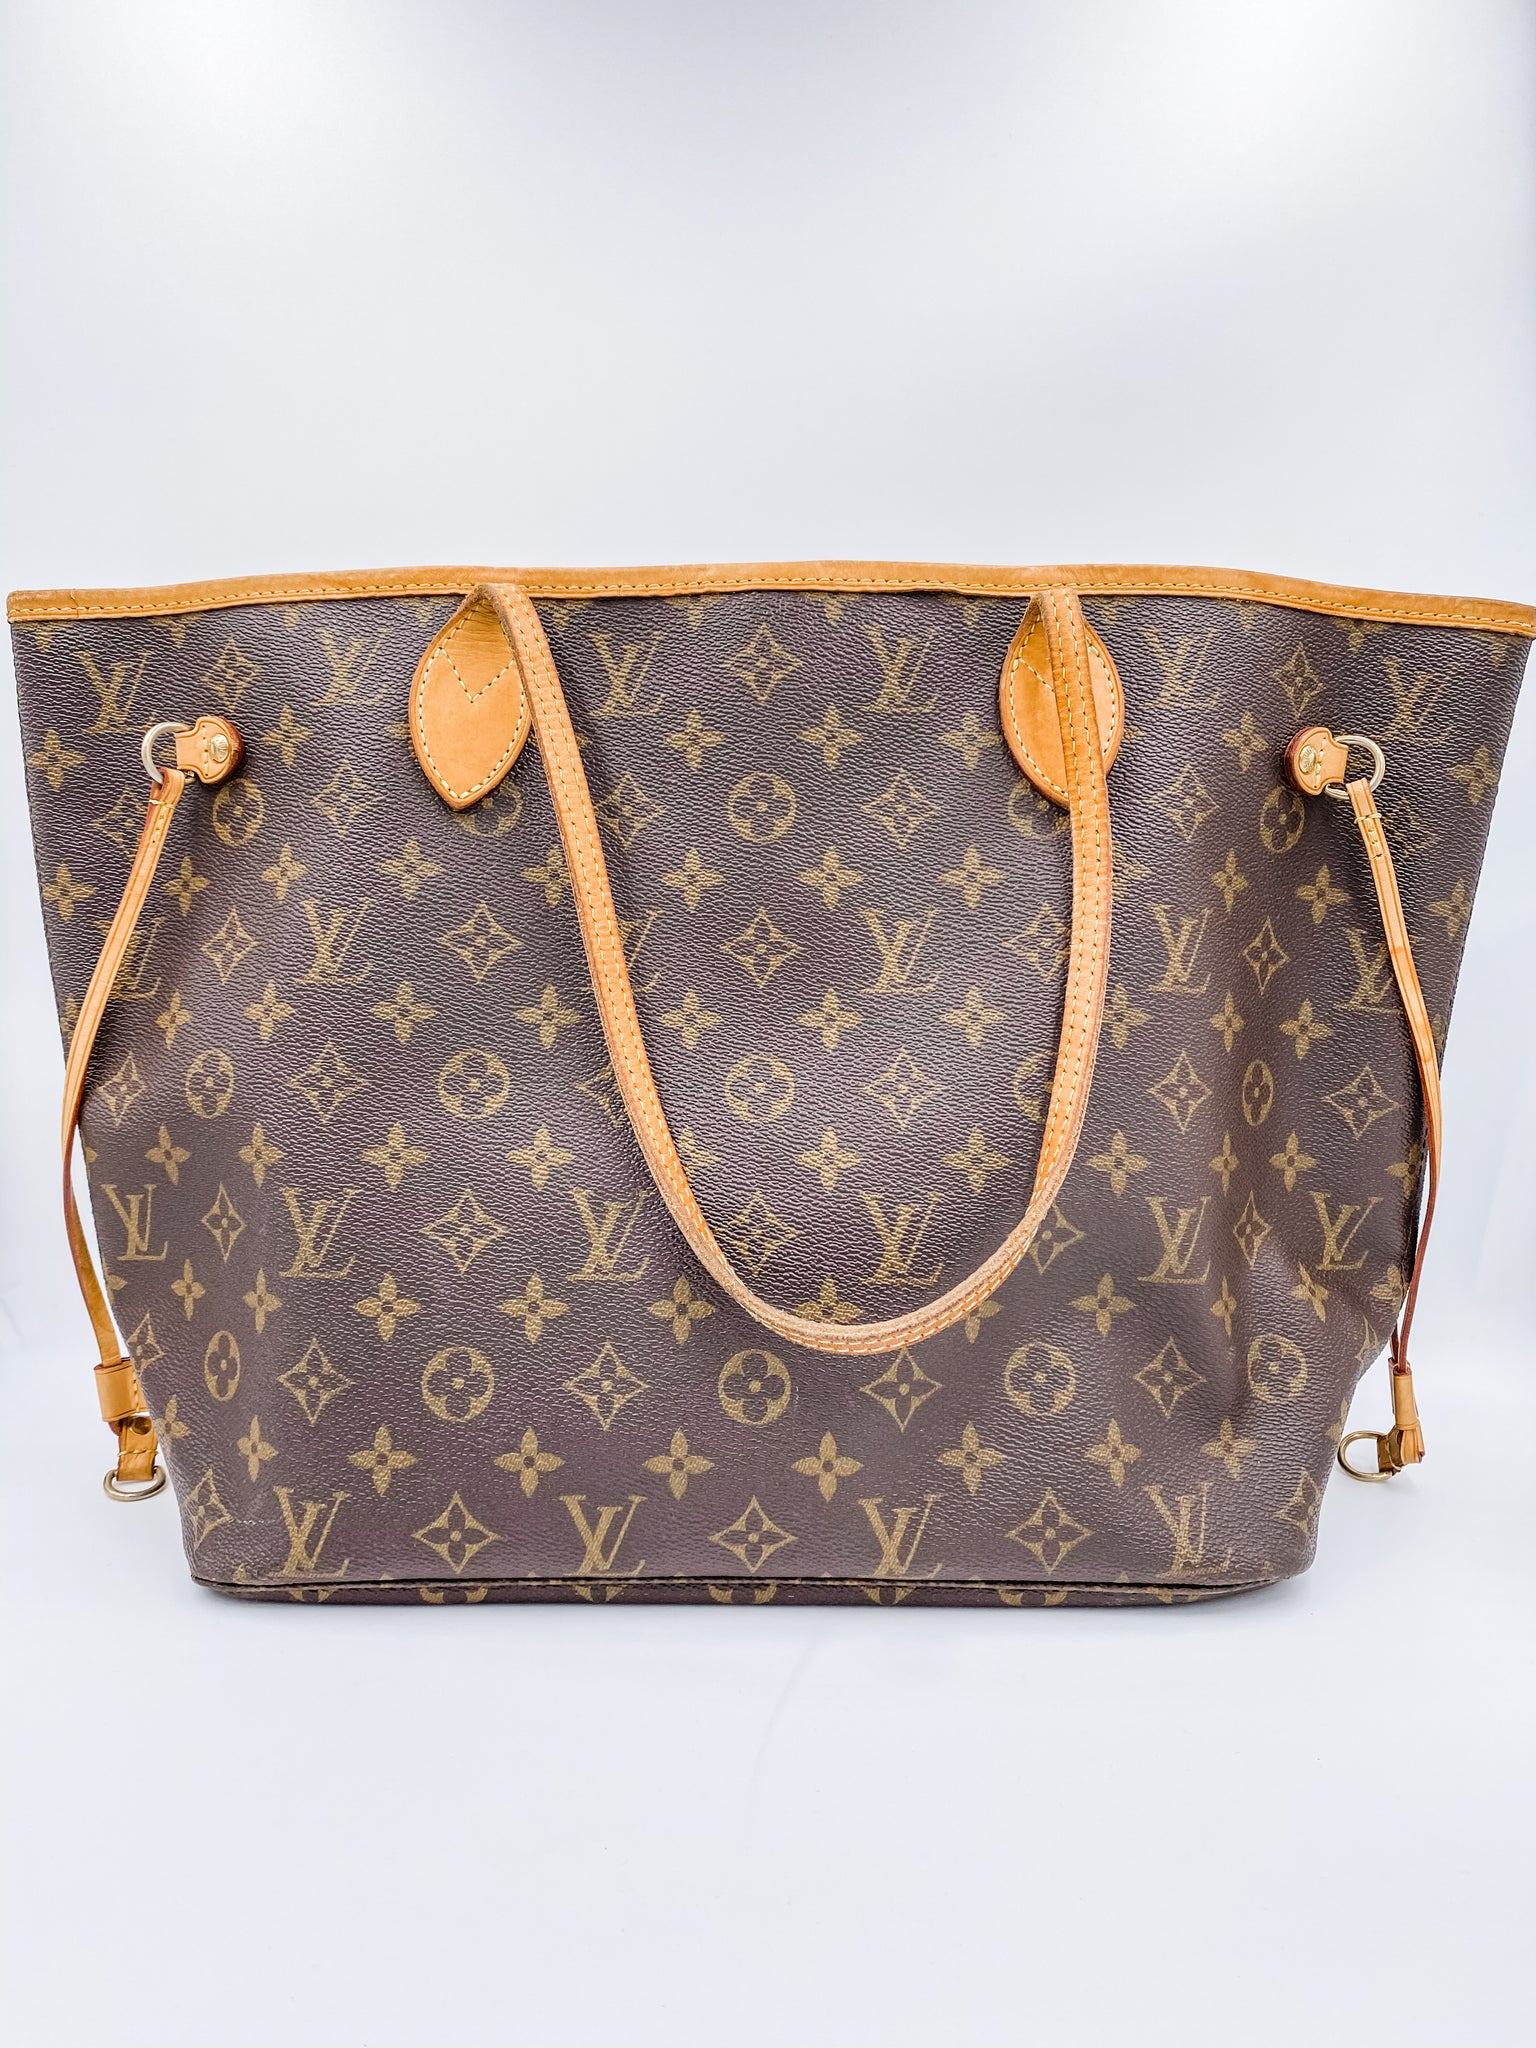 Louis Vuitton Neverfull